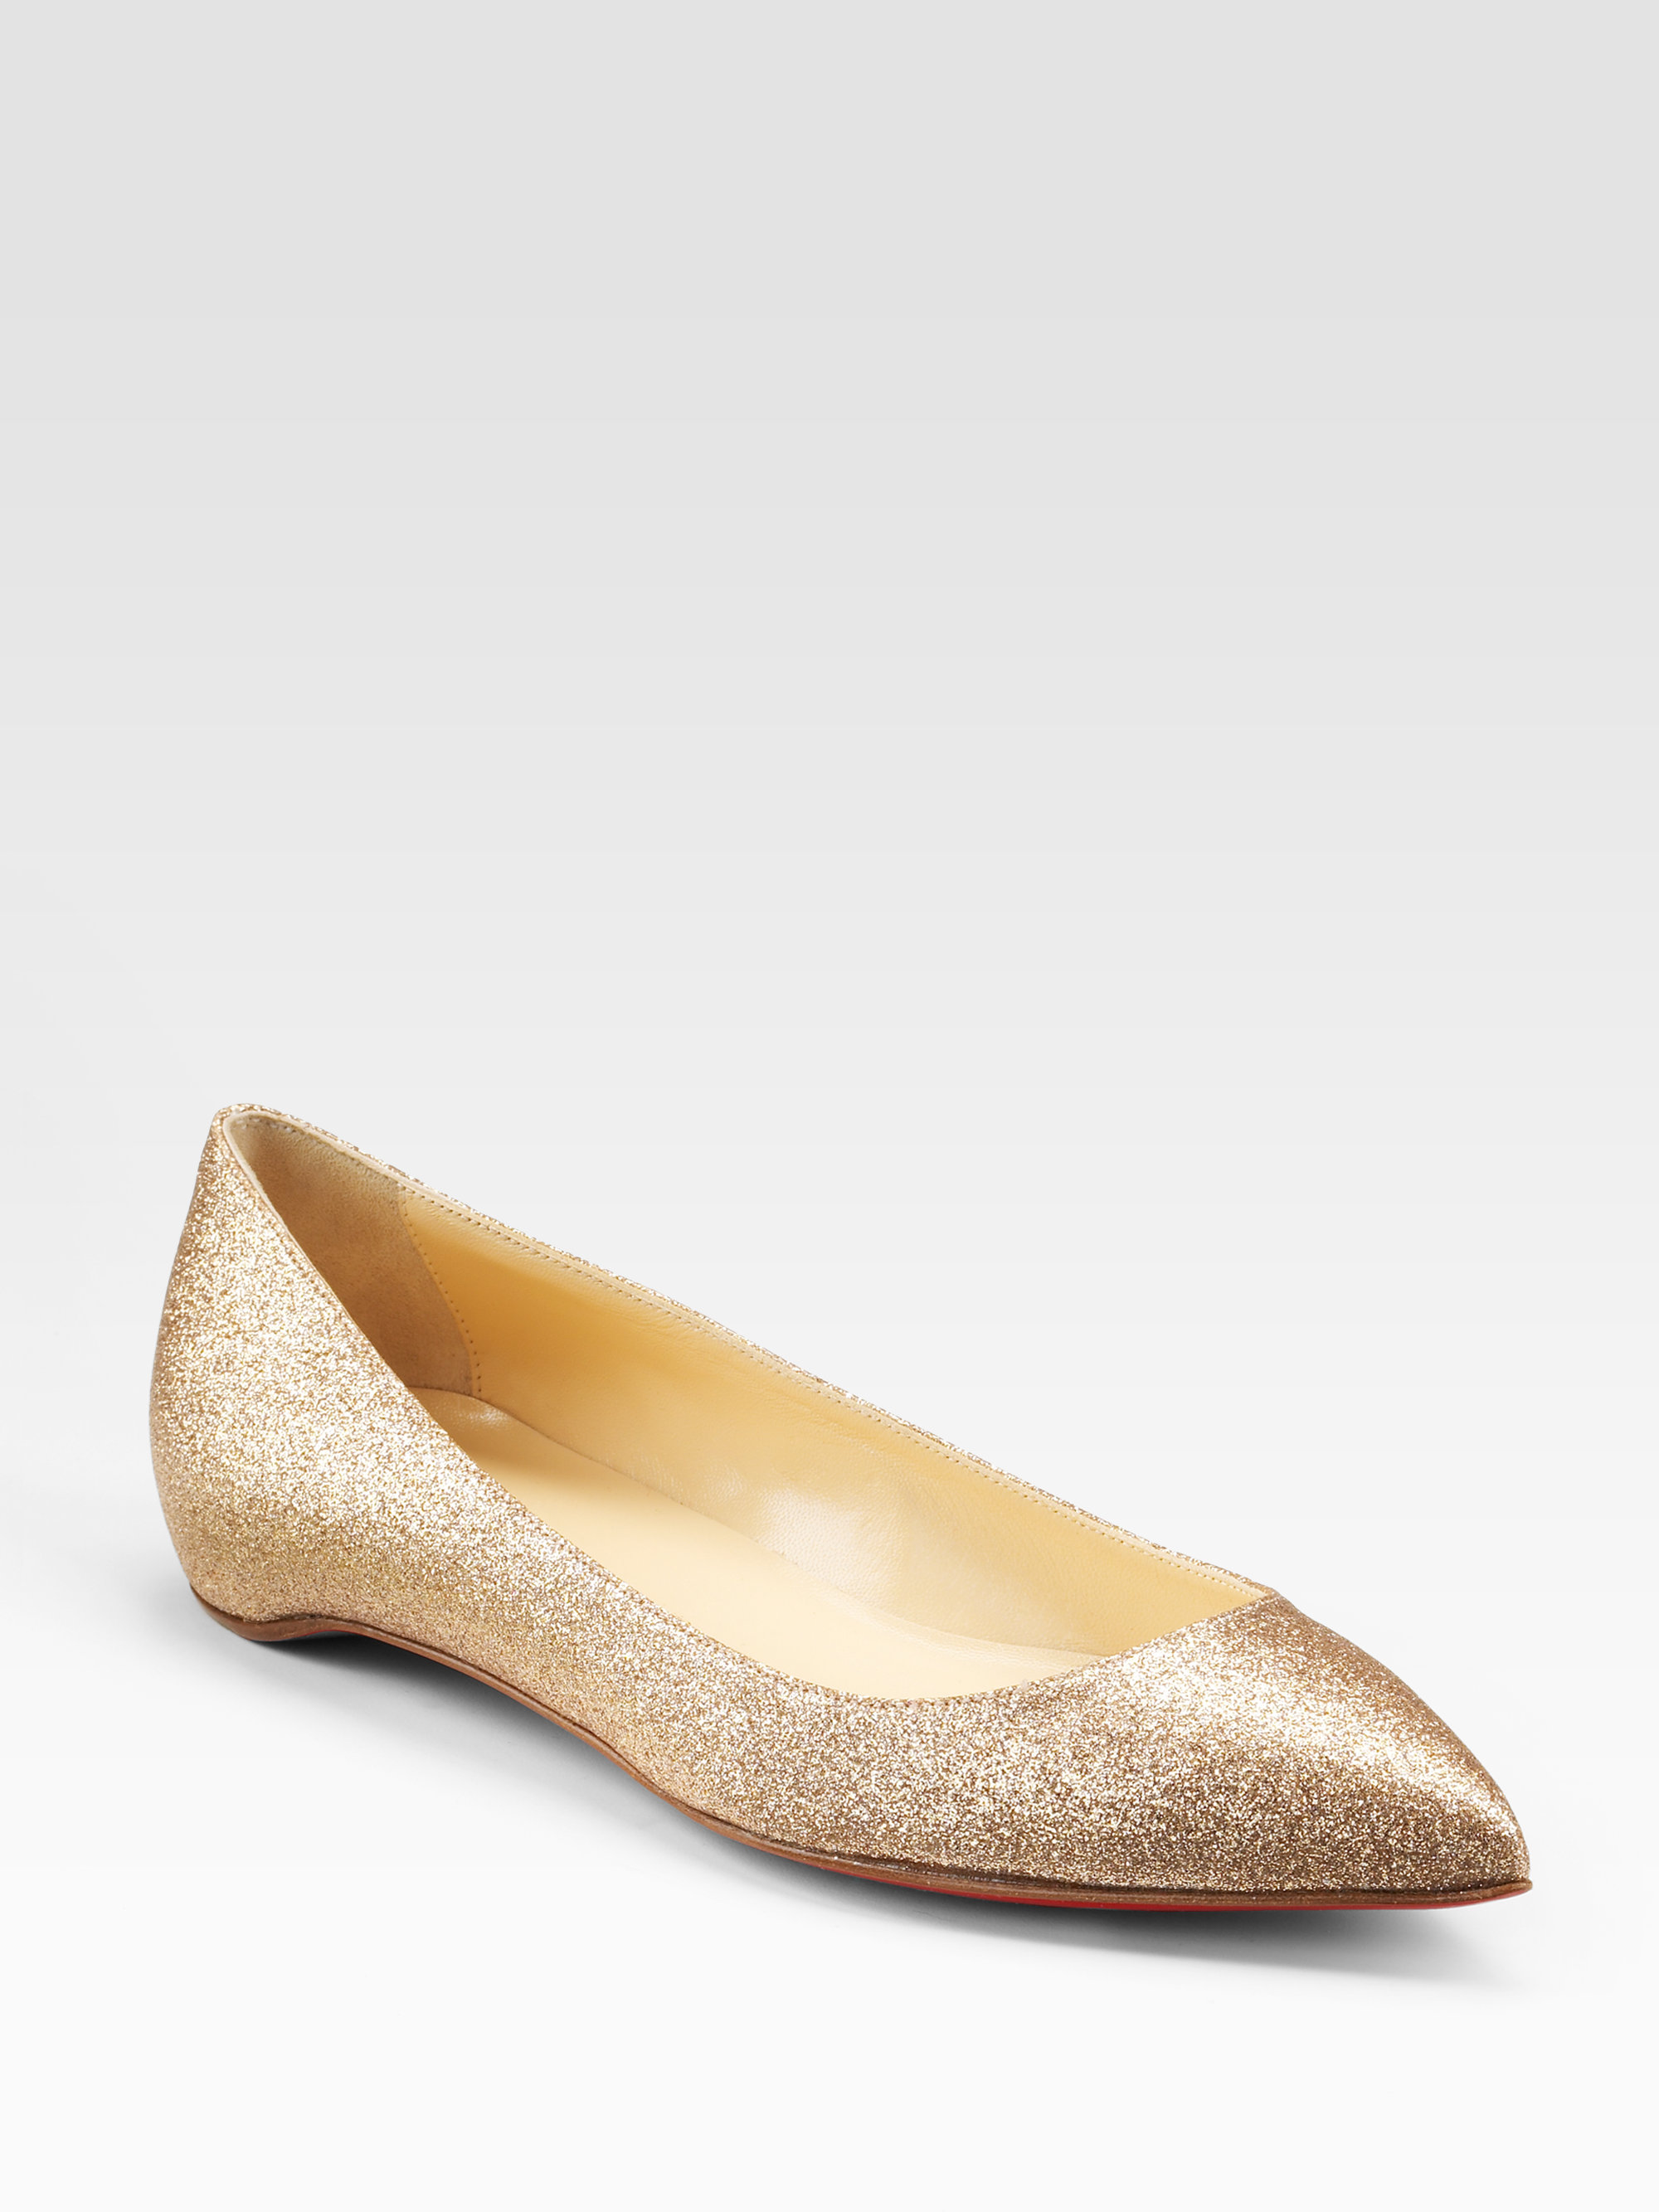 official photos 5a761 1db21 Christian Louboutin Metallic Pigalle Glittercovered Leather Ballet Flats